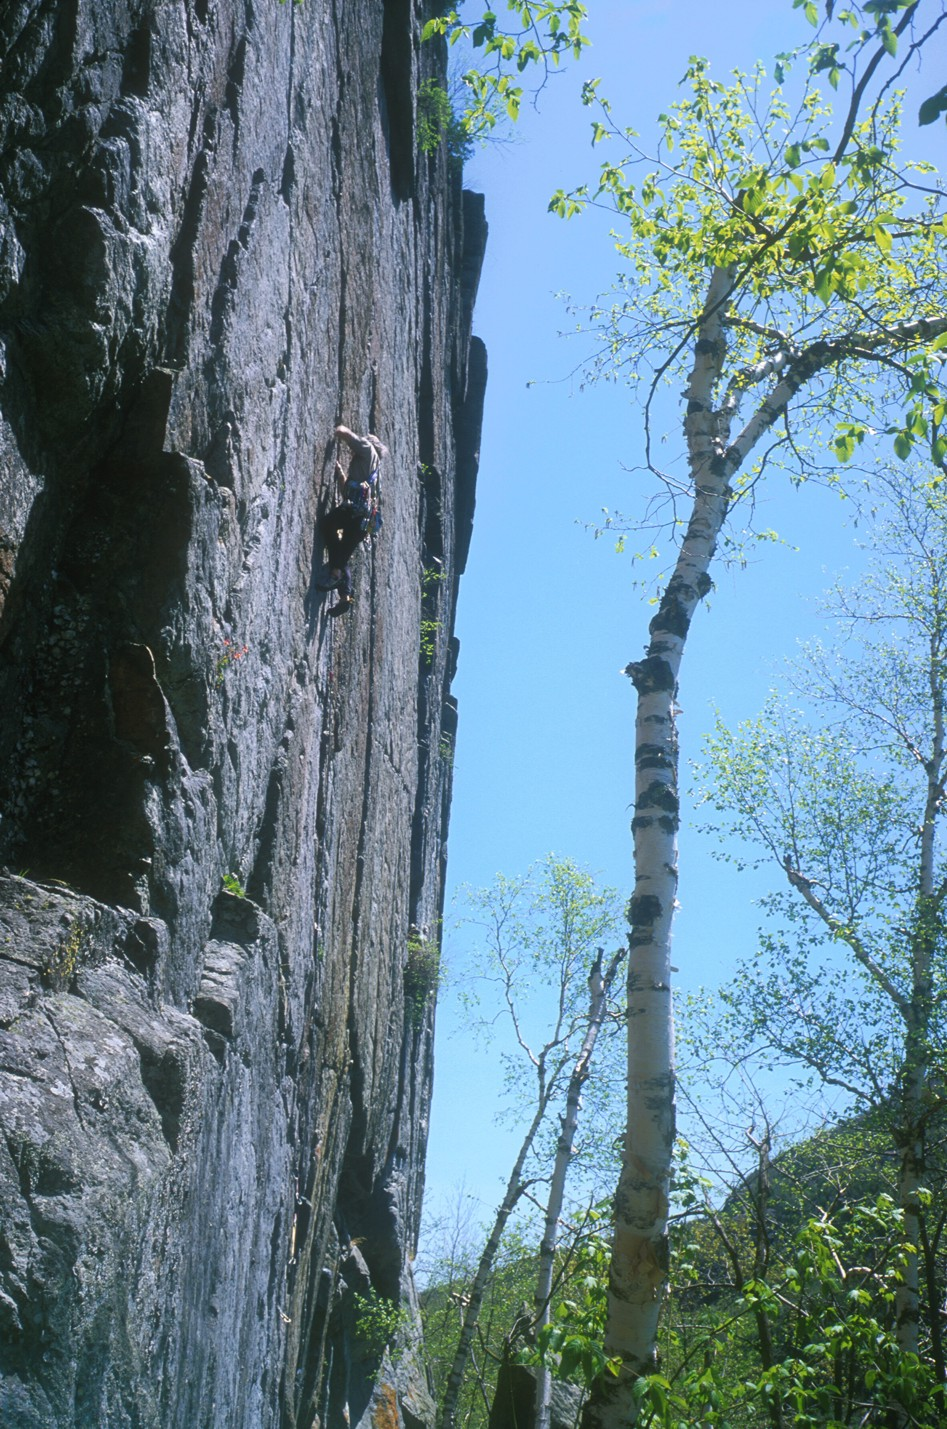 Series 3: Struggling with the crux of the route